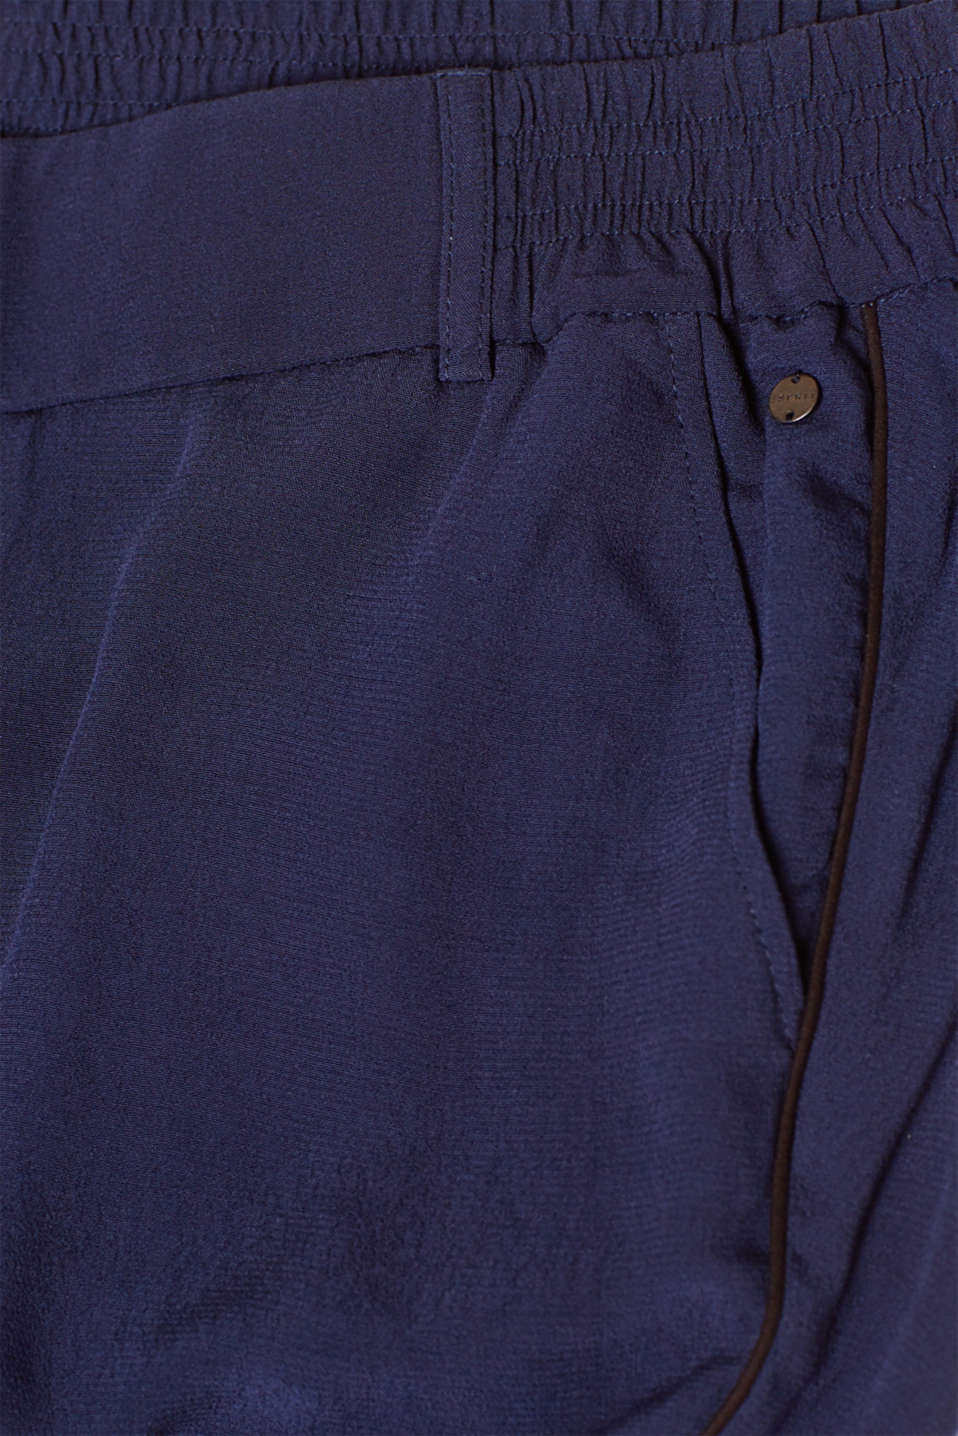 Esprit - Tracksuit style trousers with an under-bump waistband